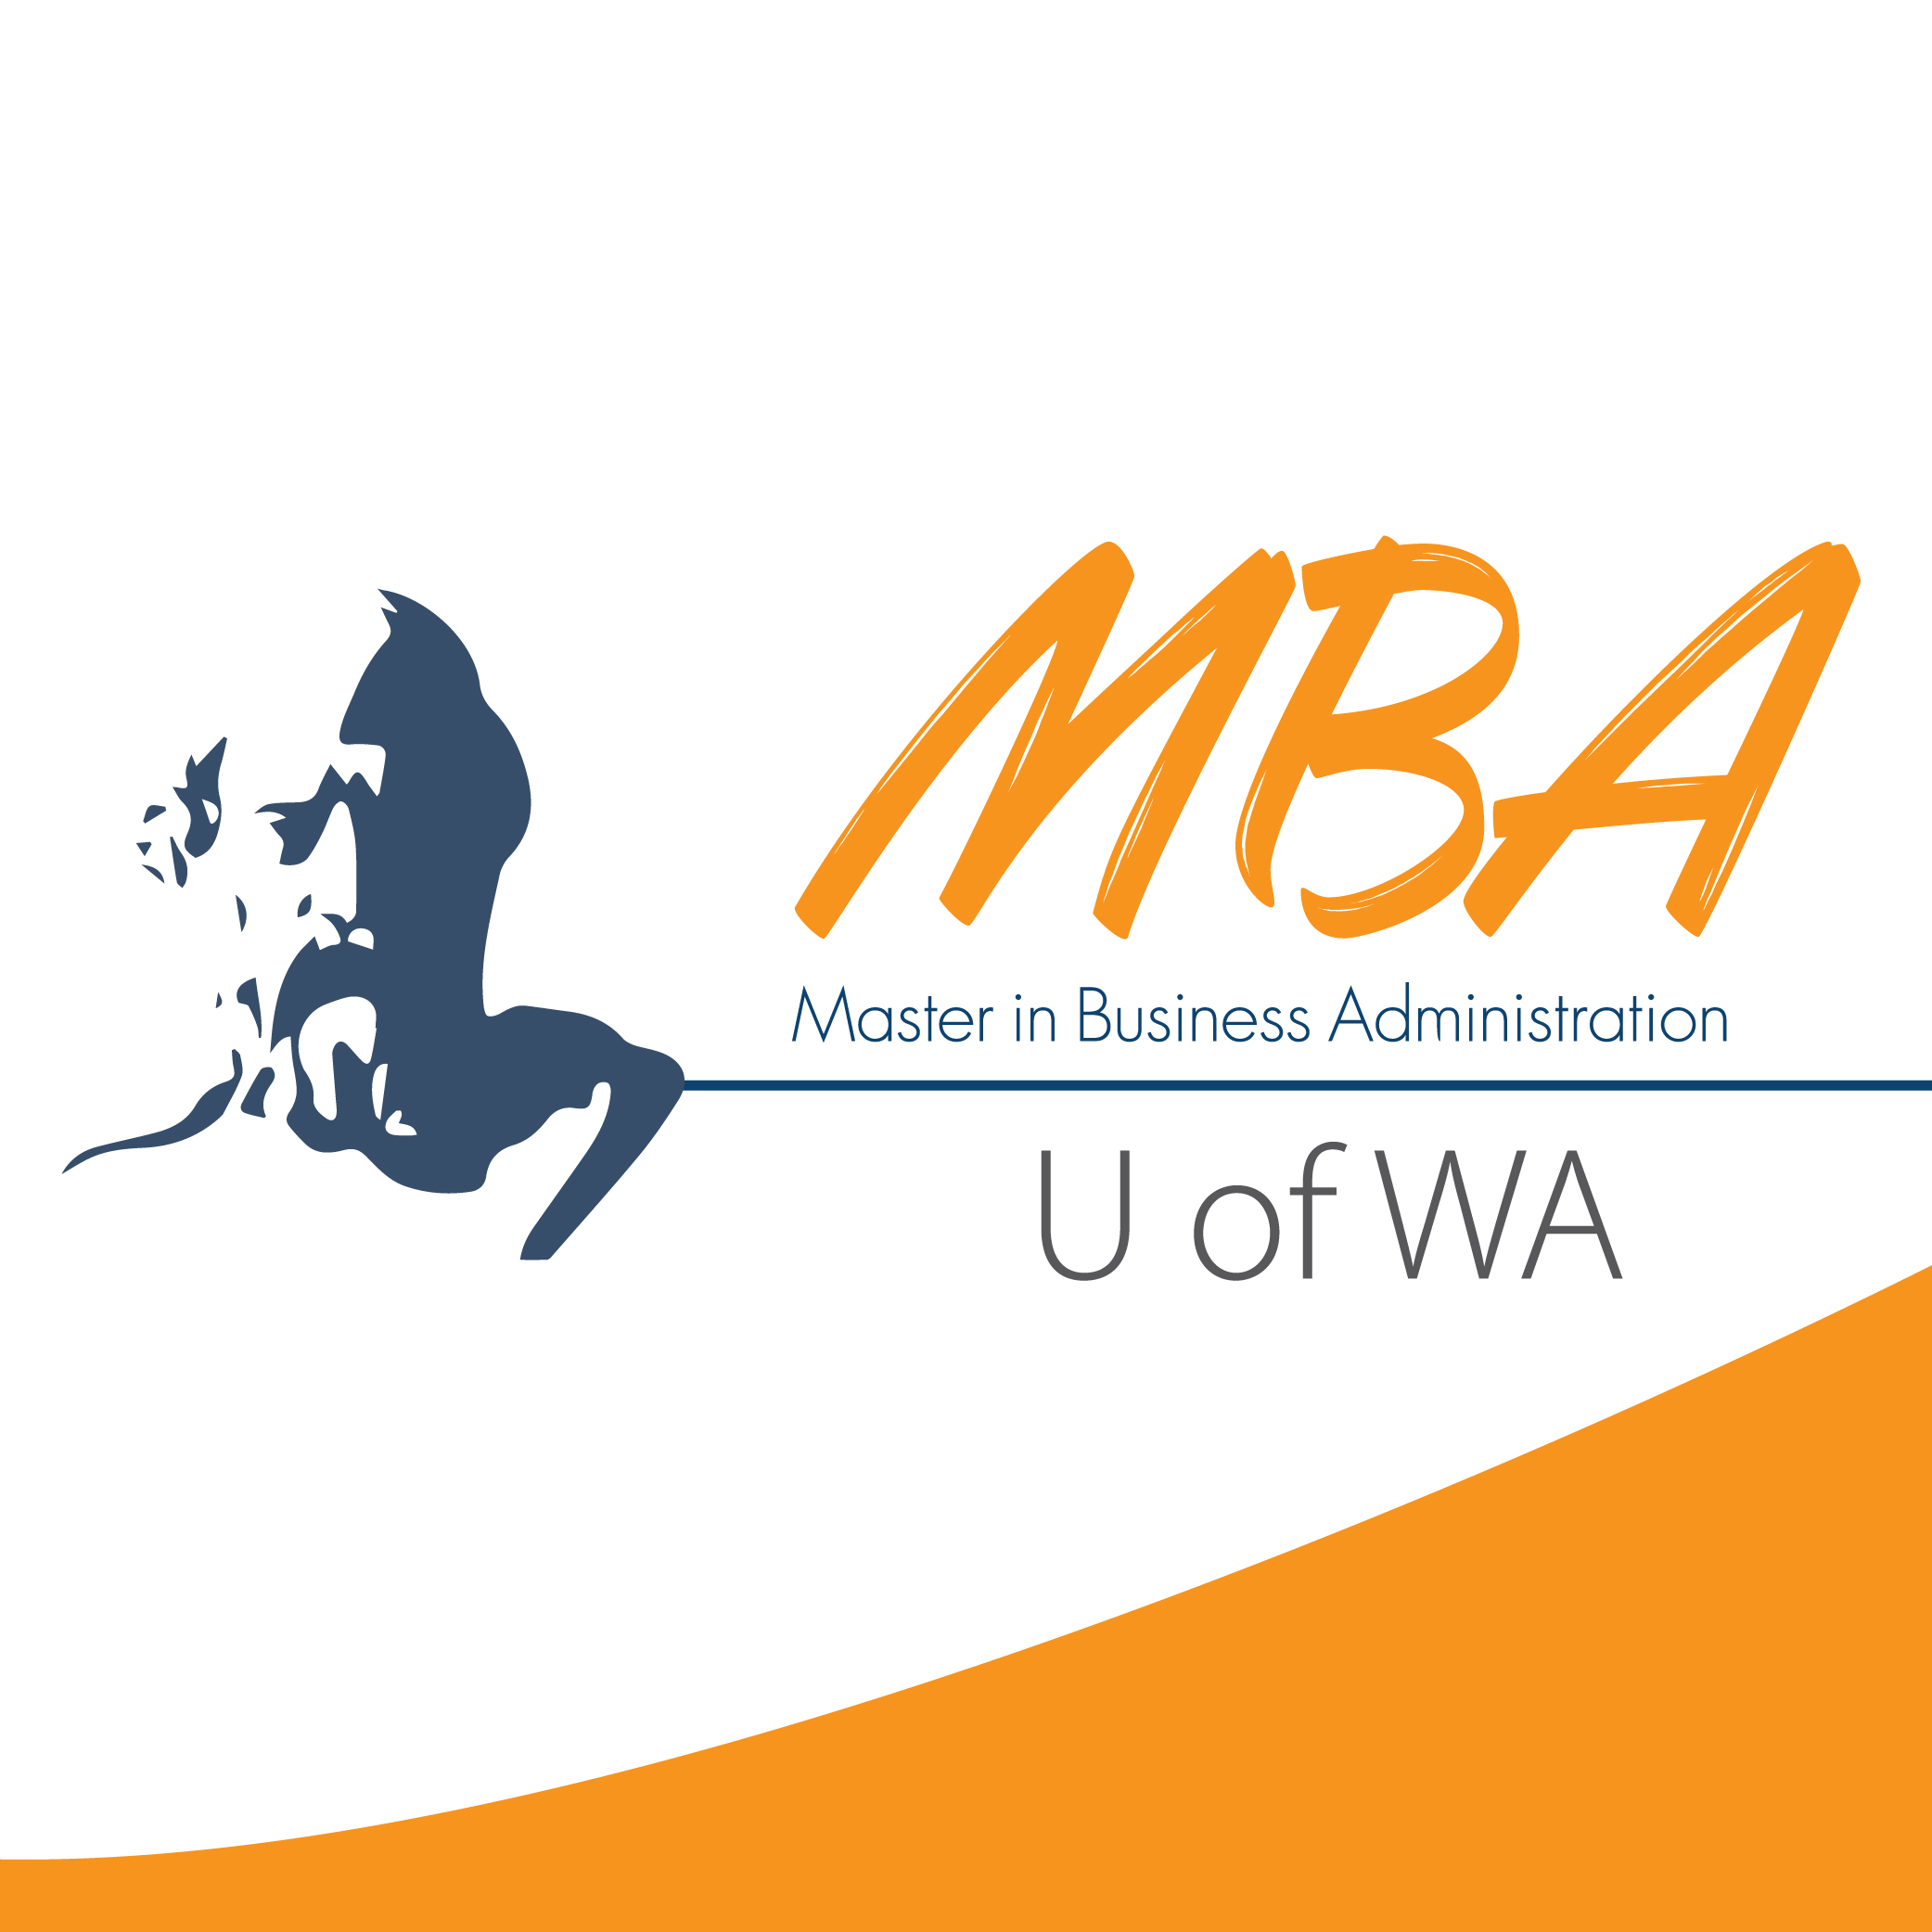 mba fb profile